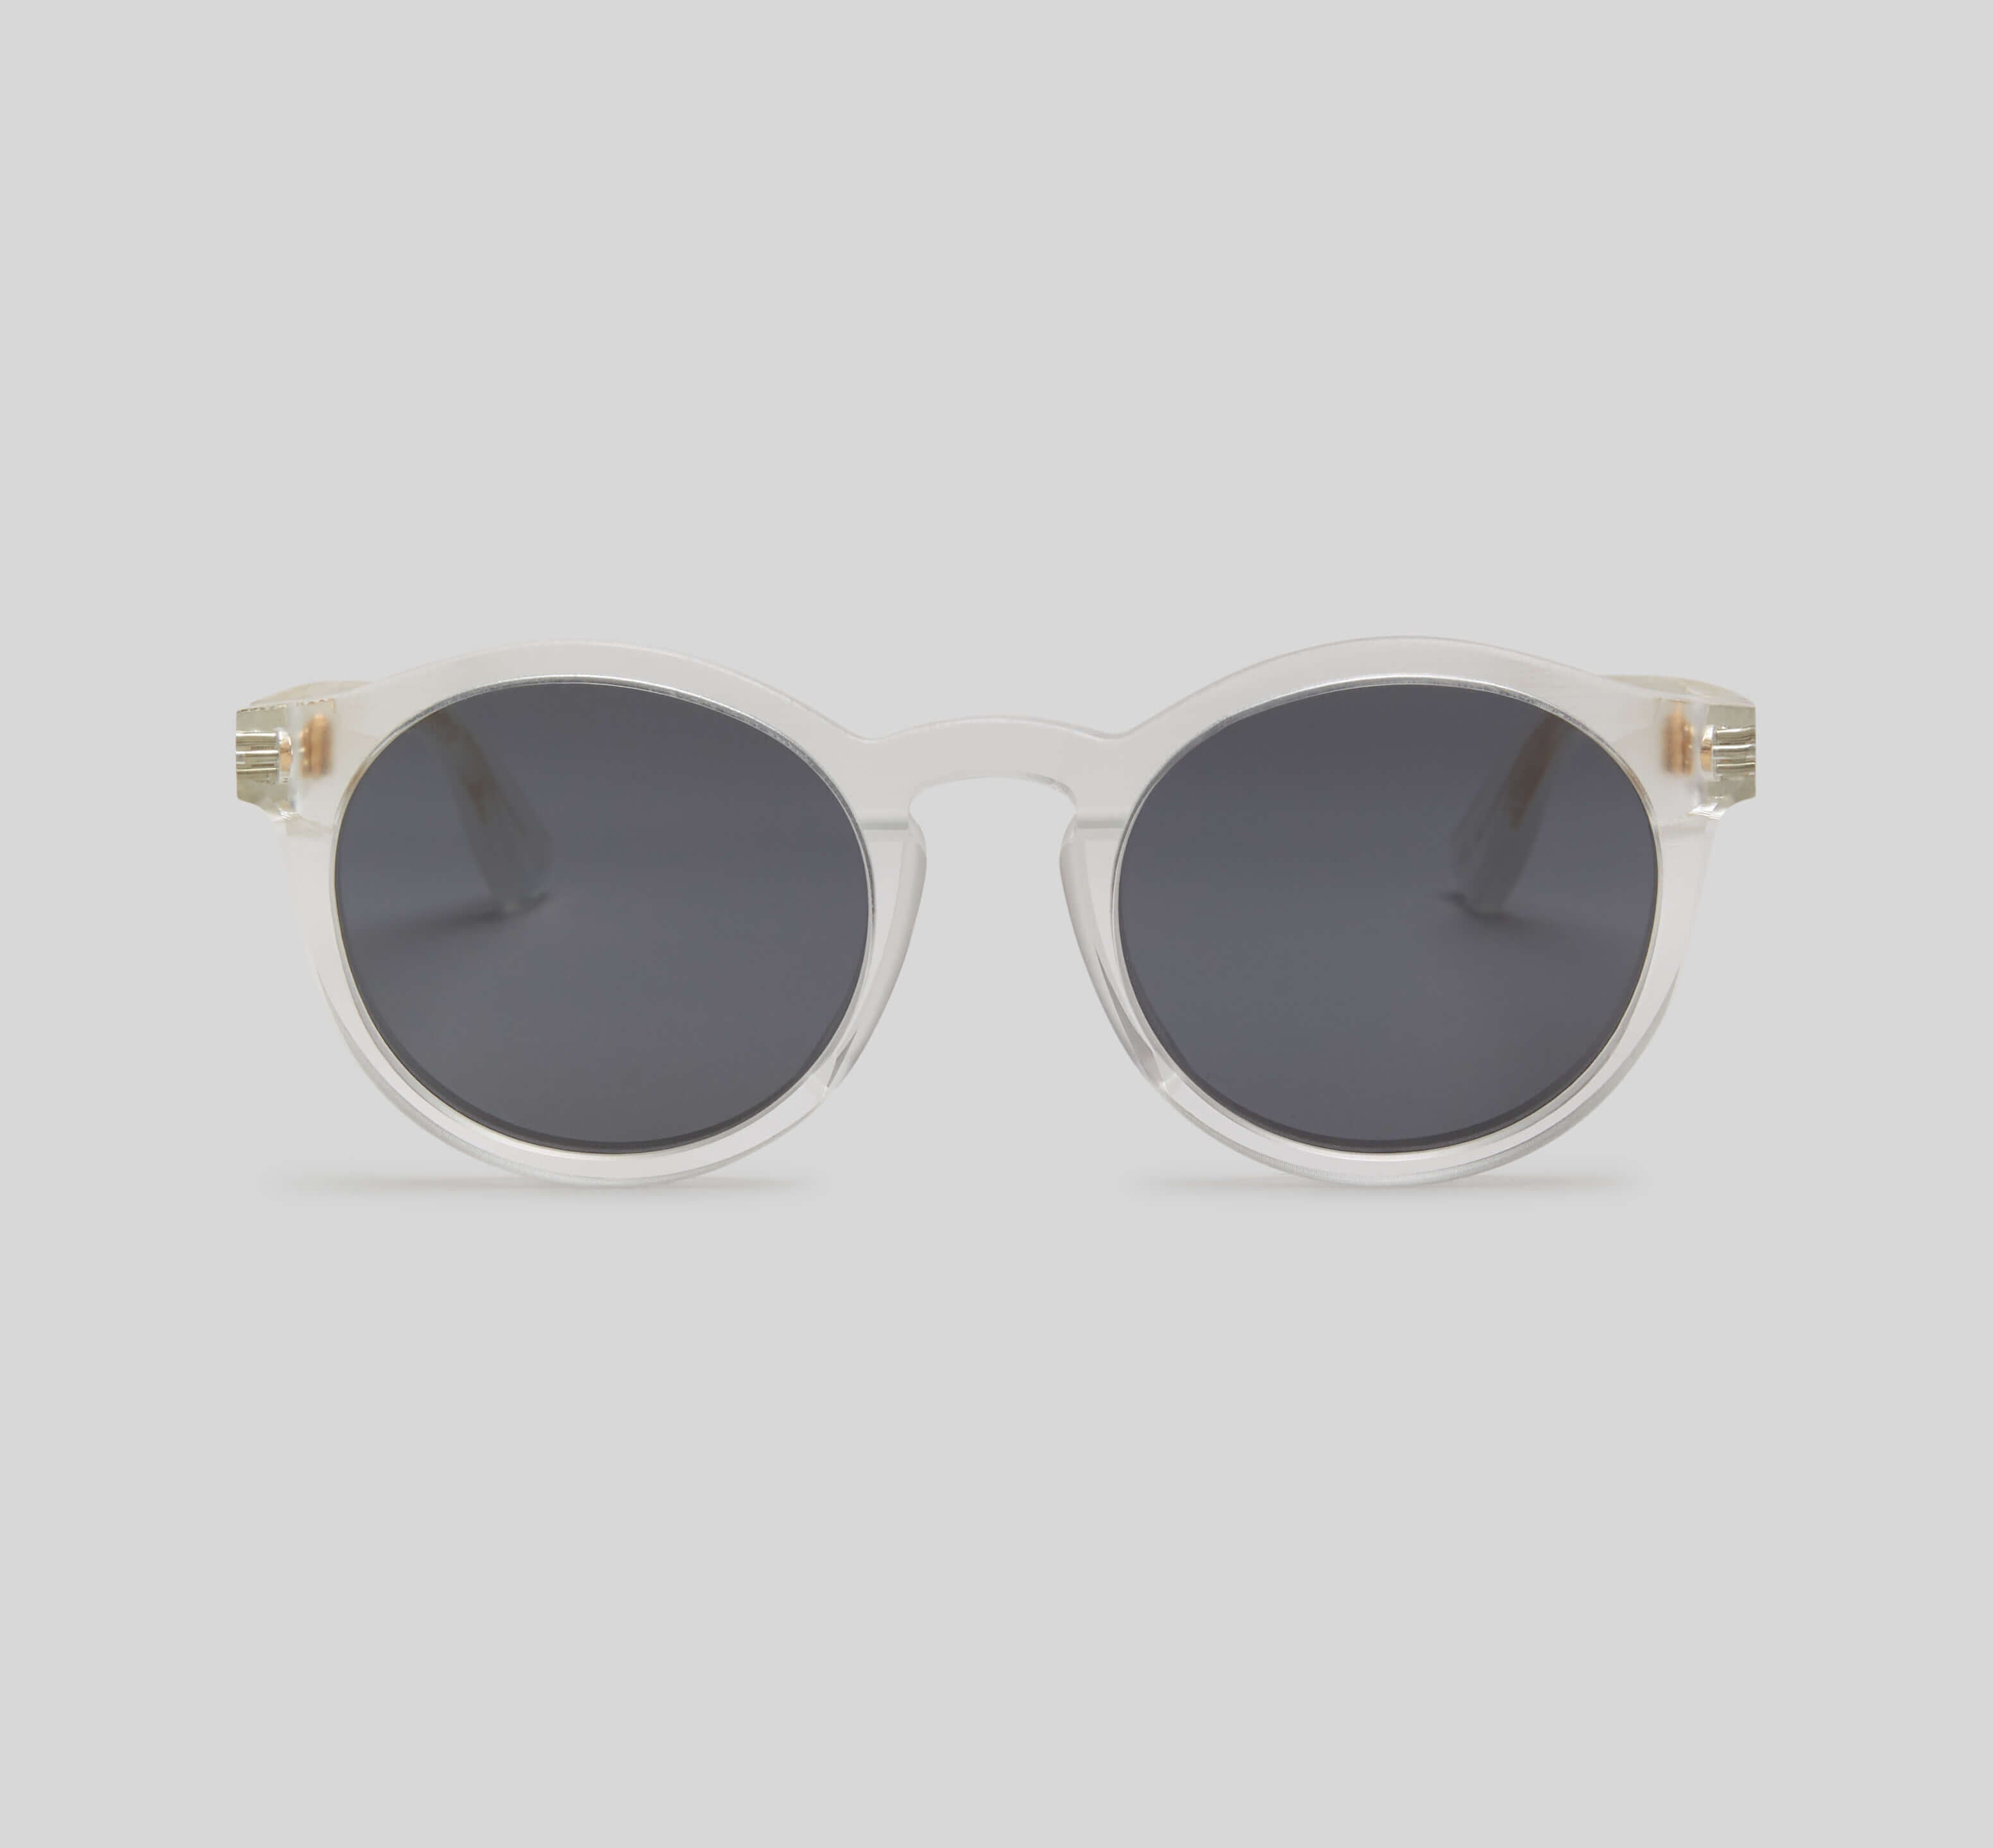 Round clear sunglasses eco friendly sustainable fashion made in Japan unisex sunglasses for men sunglasses for women and blue light filter